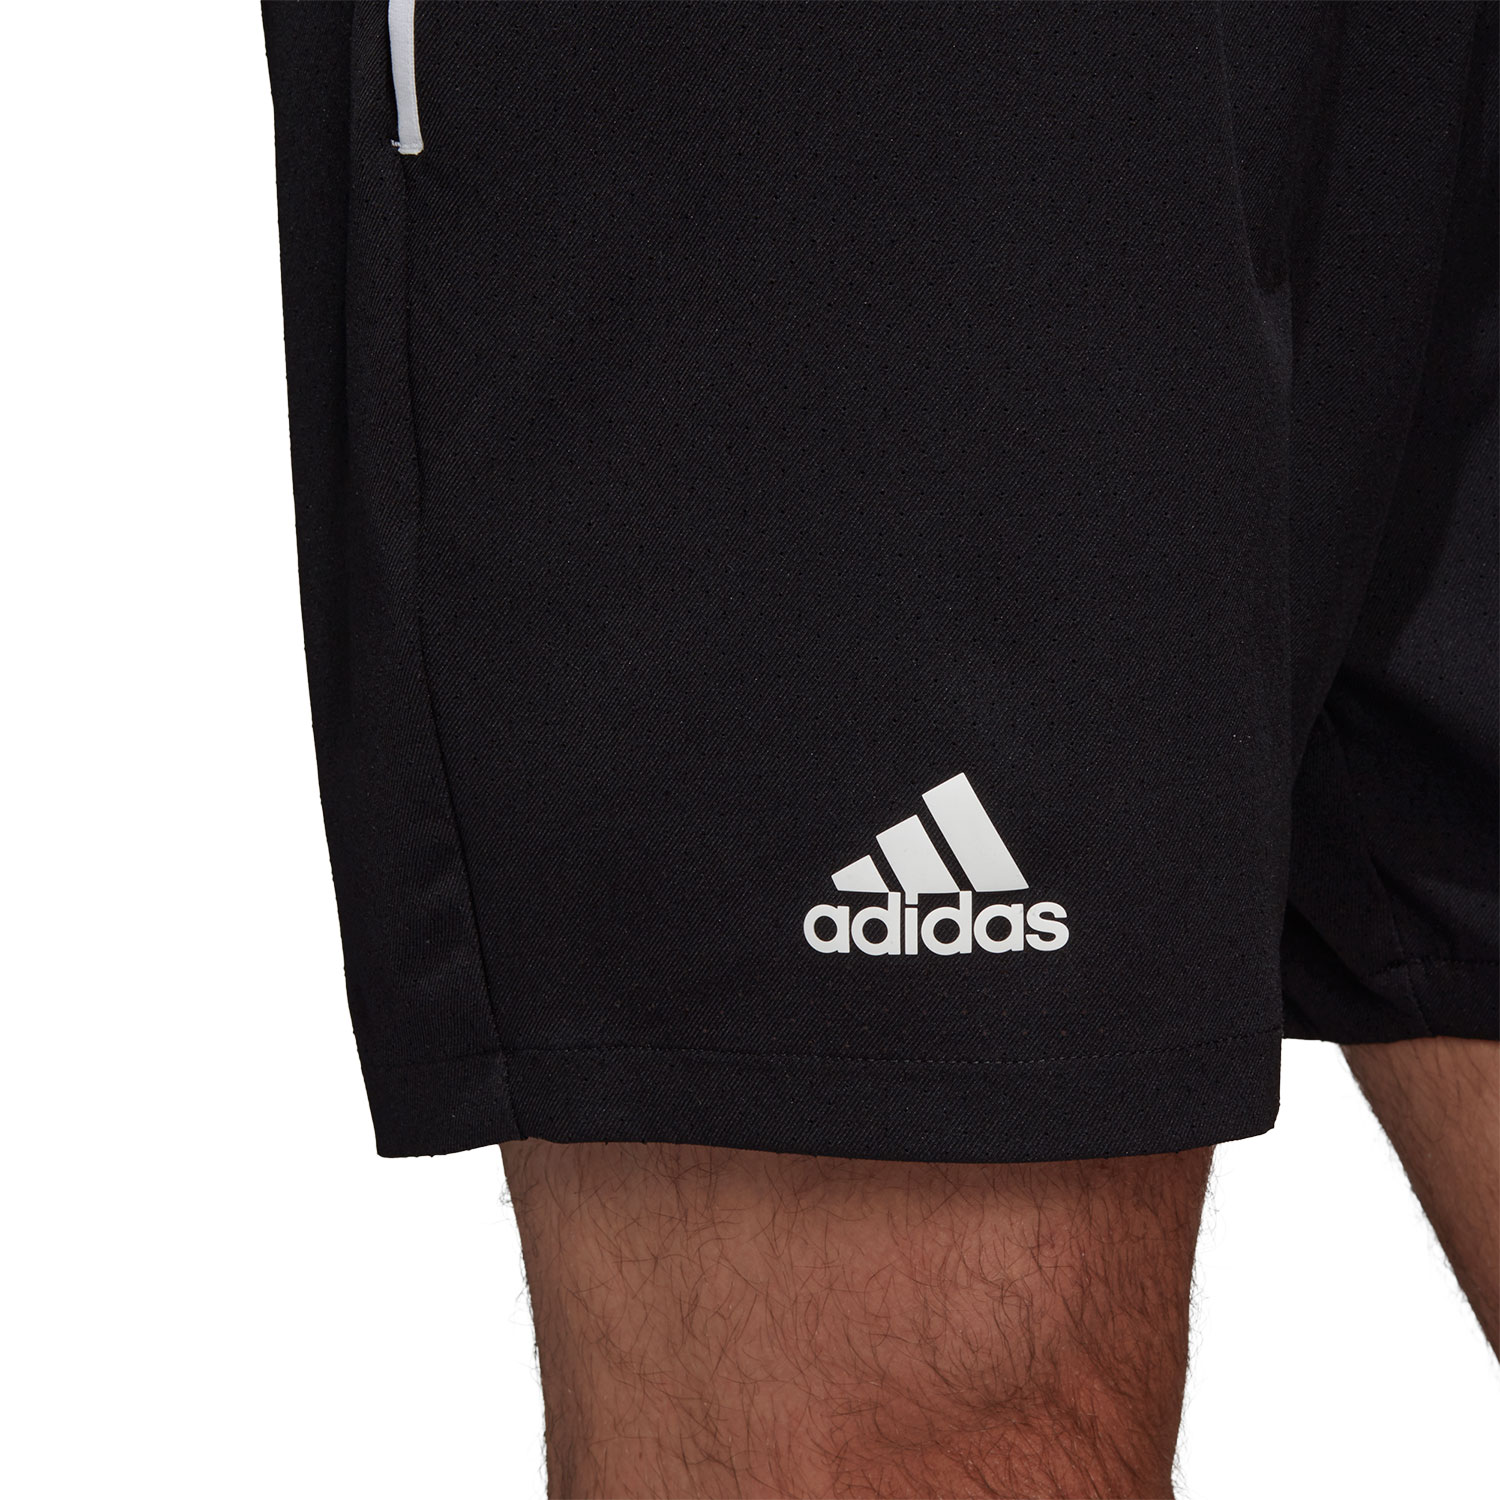 Adidas Escouade 7in Shorts - Black DY2413